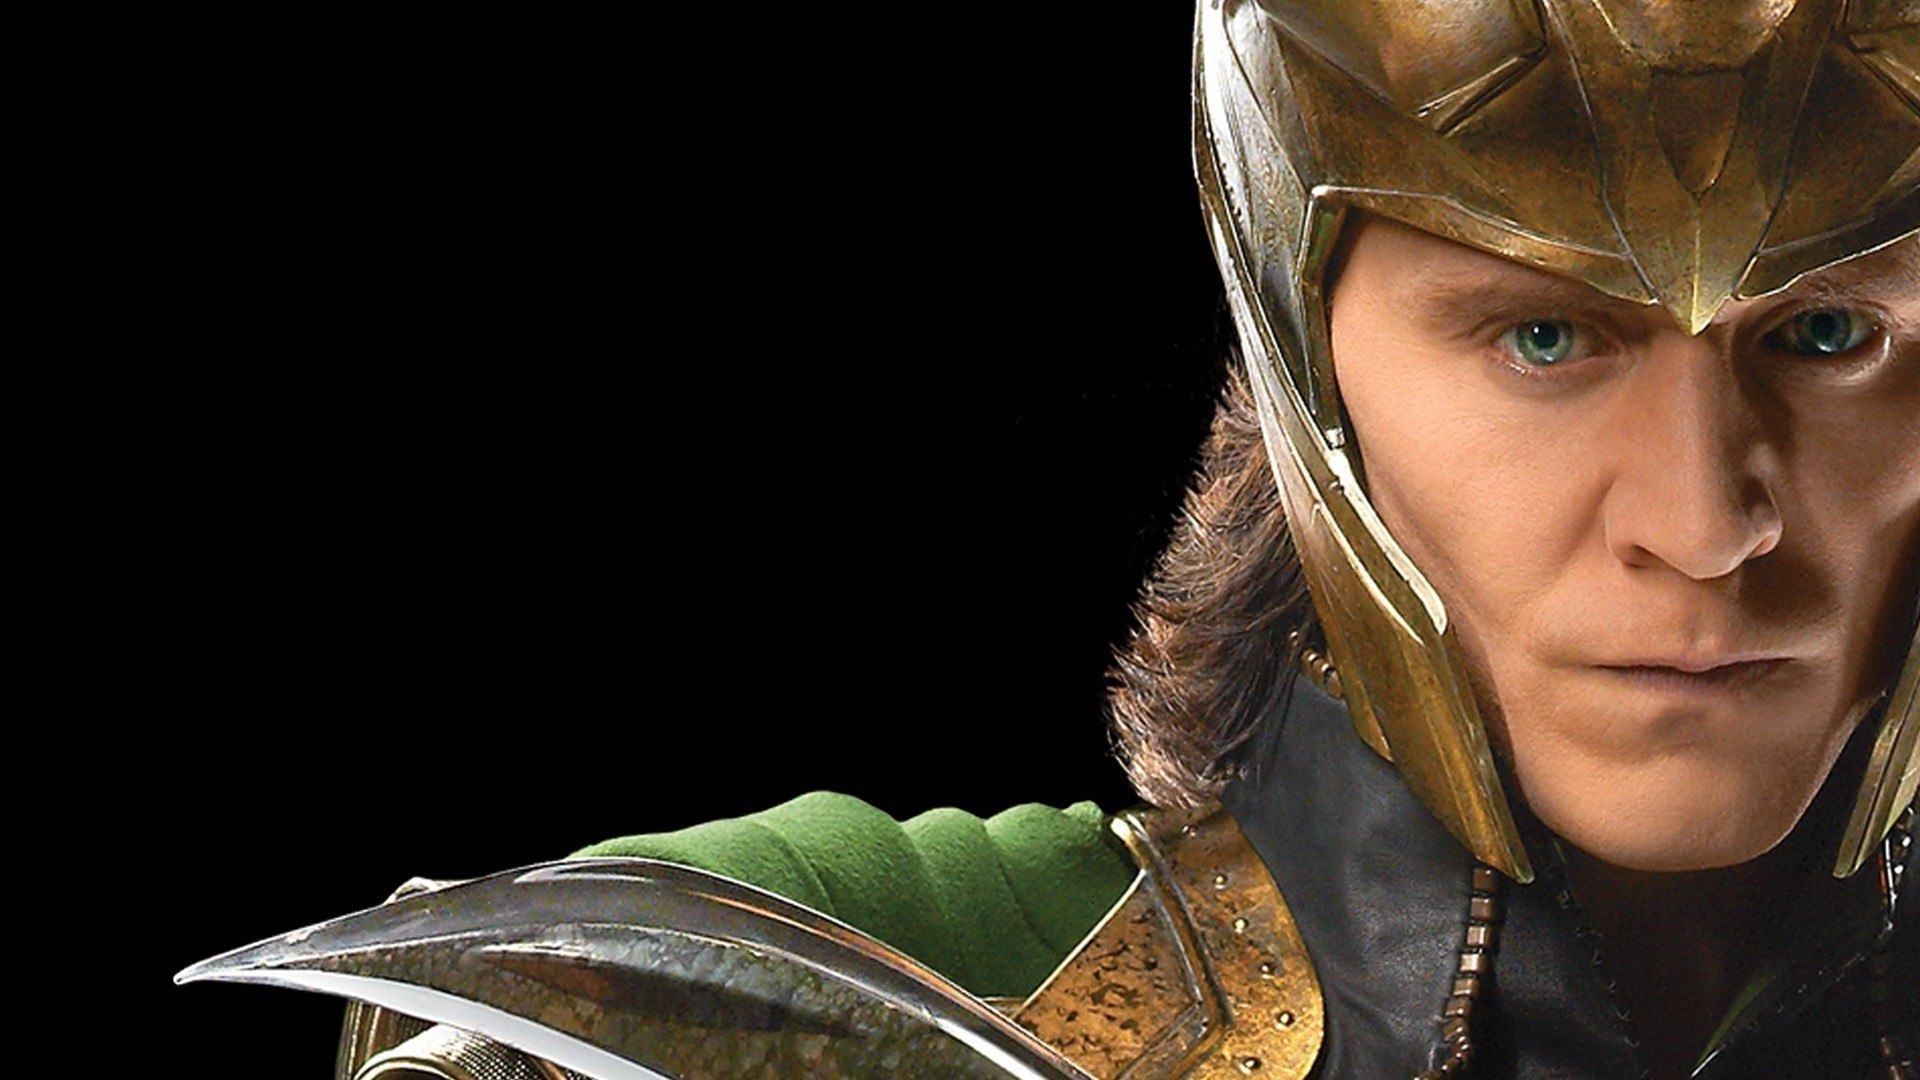 Loki The Avengers Movie Tom Hiddleston Wallpaper Allwallpaper In